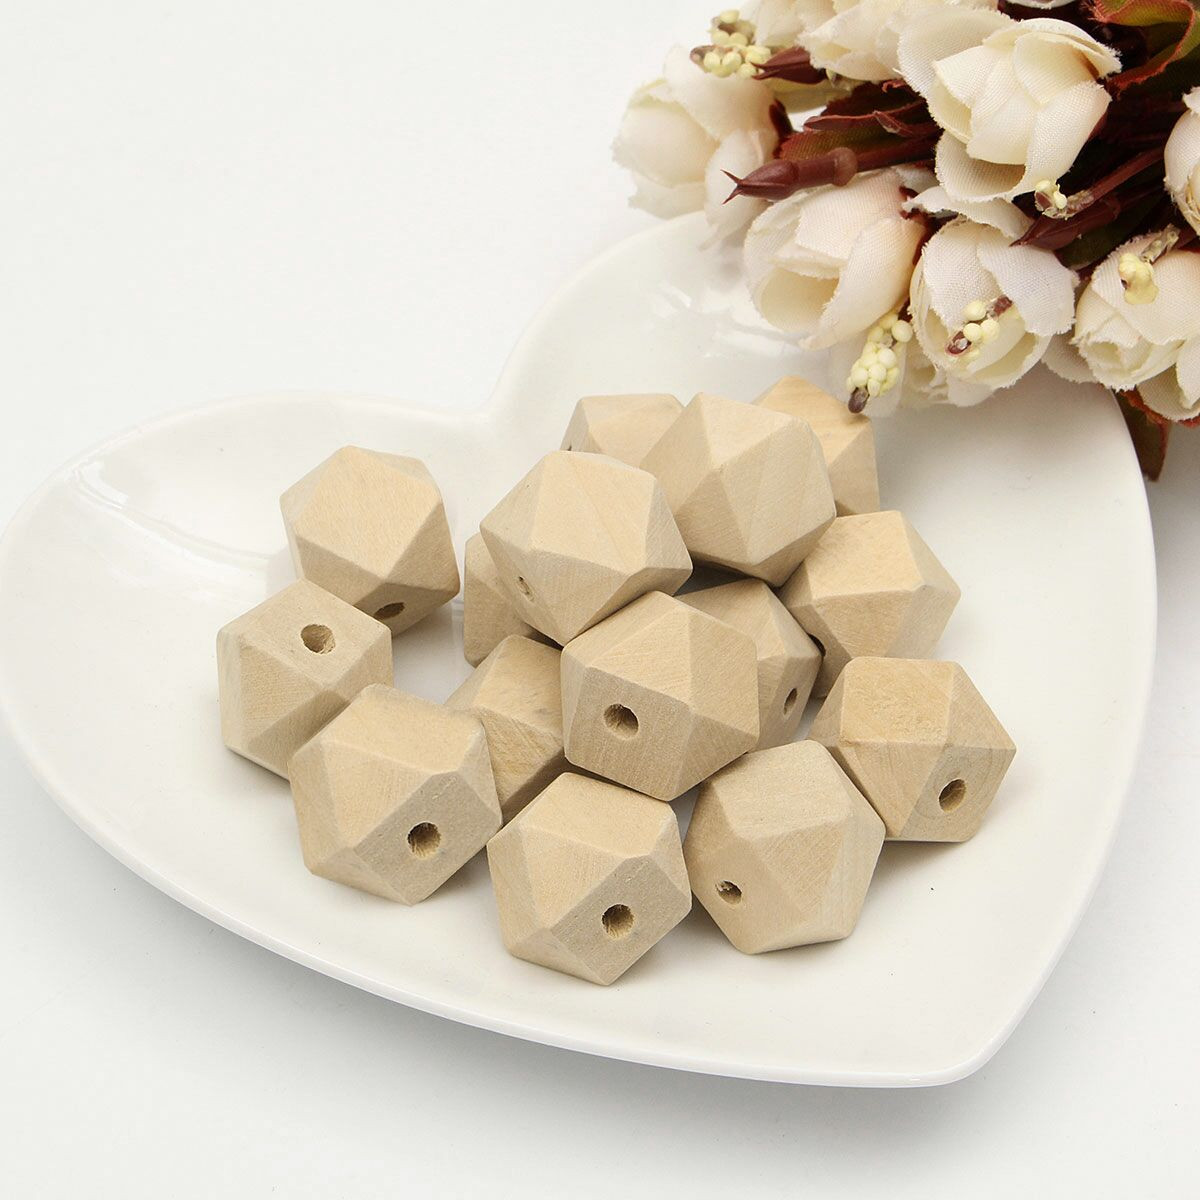 15pcs 18mm Geometric Wooden Loose Beads DIY Accessories Natural Craft